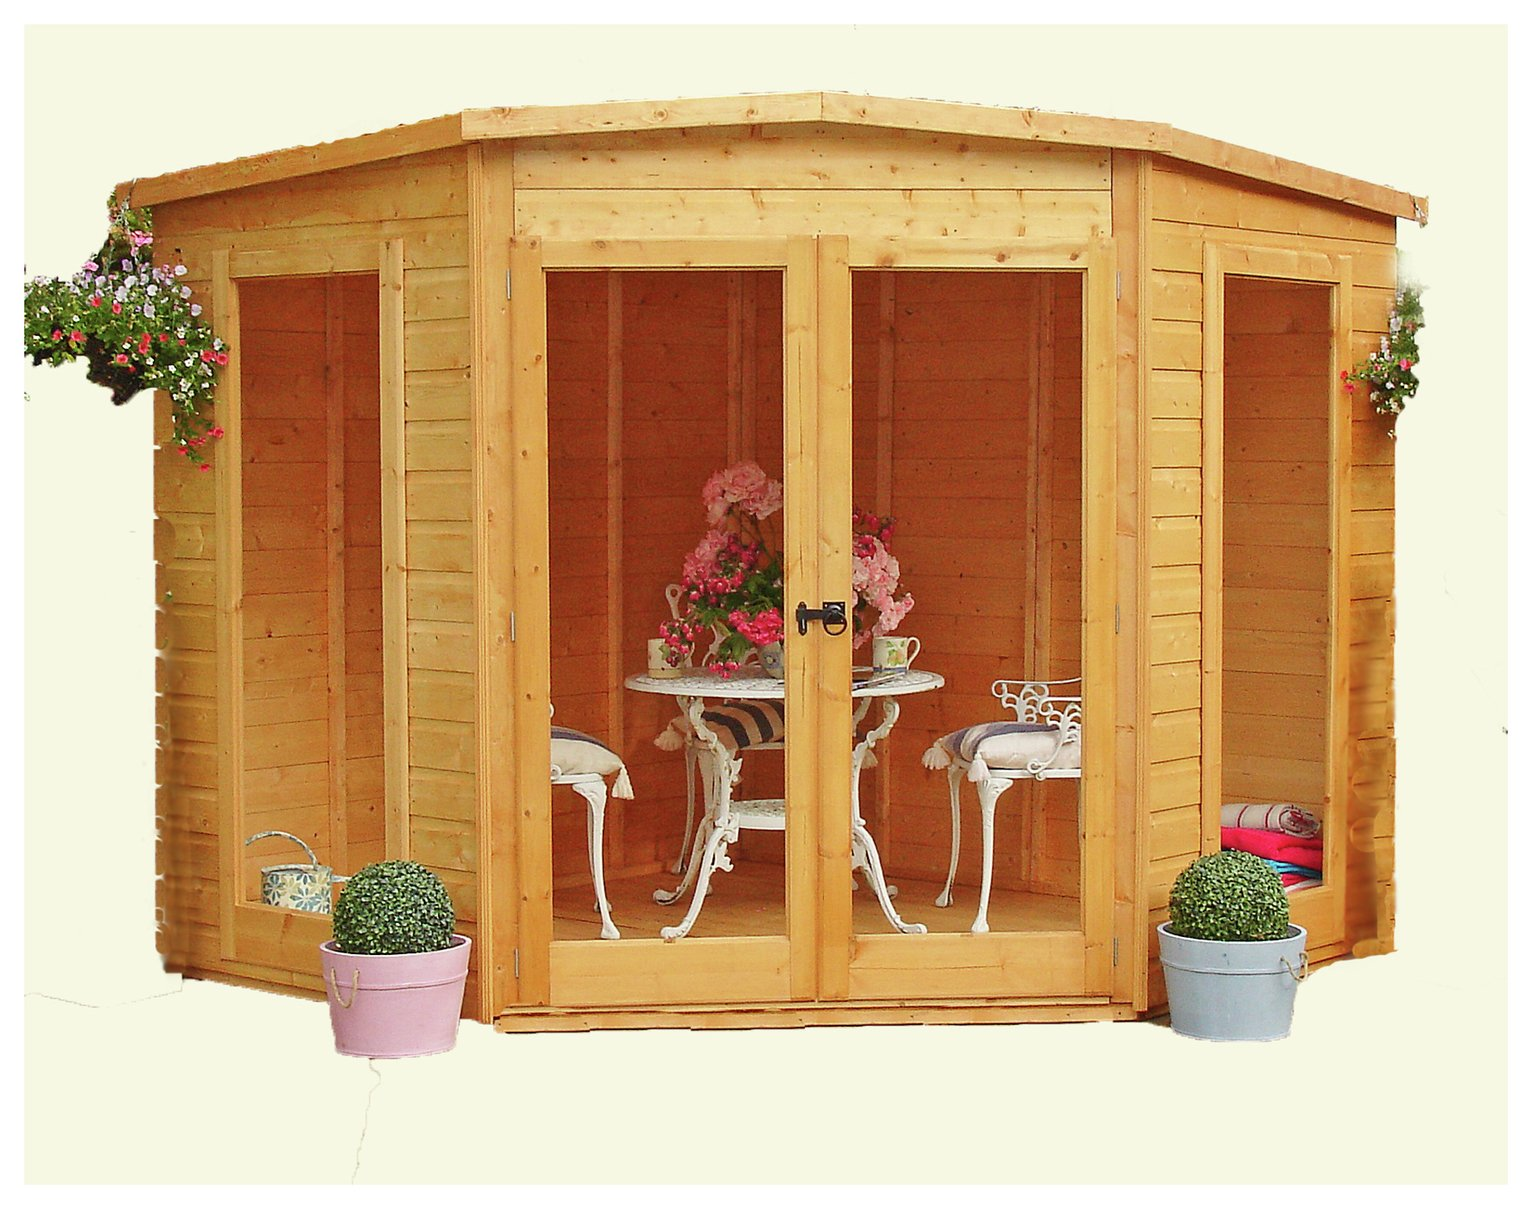 Homewood Barclay Wooden Summerhouse 7 x 7ft. at Argos from Homewood